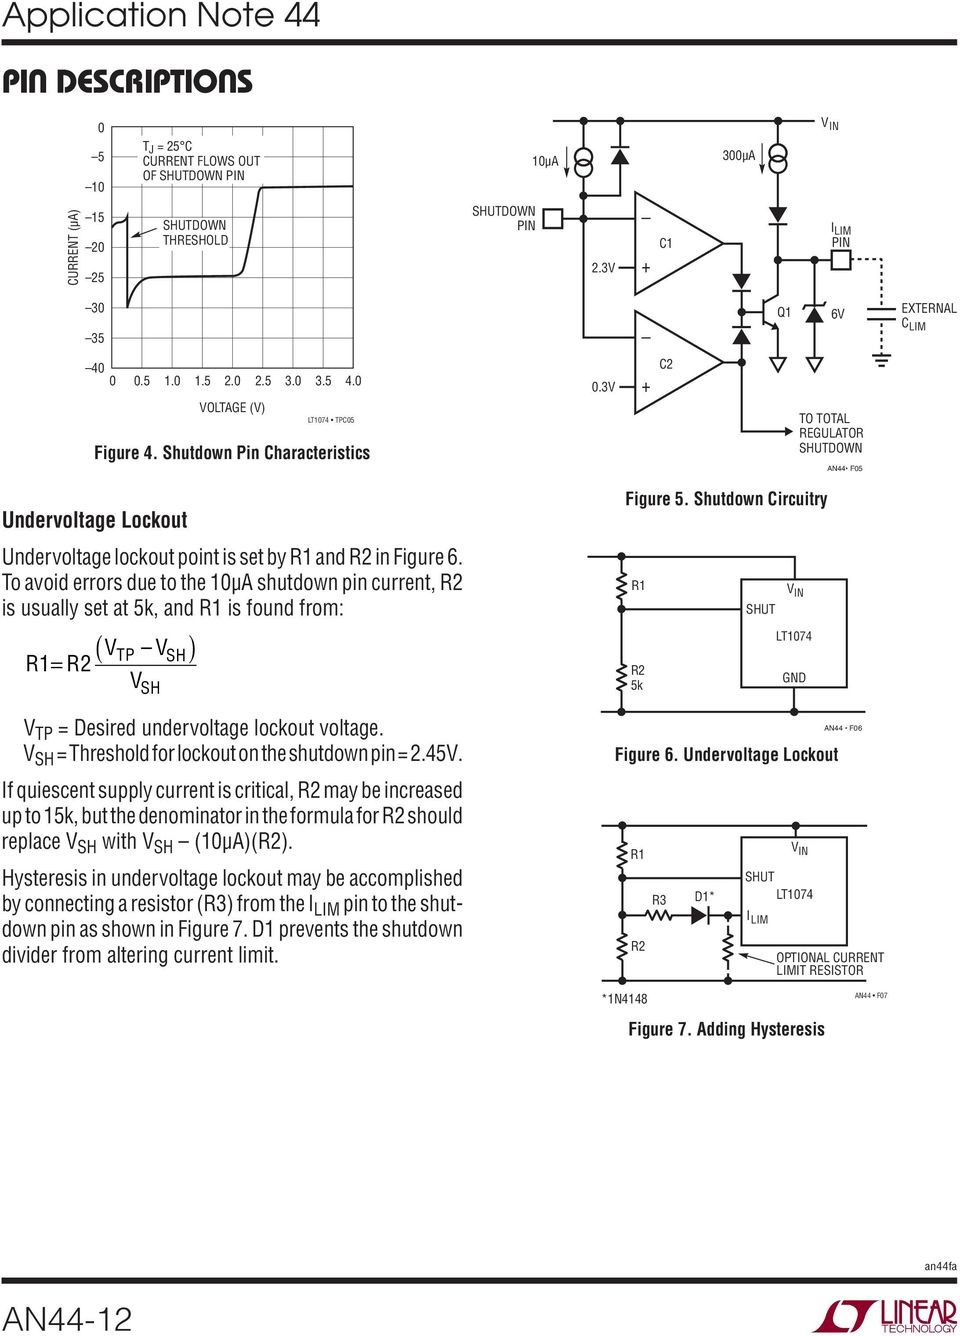 Application Note 44 September Lt1074 Lt1076 Design Manual An44 1 National Lm555 Datasheet Replacement For Se555 Ne555 Series And The Connection Diagram To Avoid Errors Due 1a Shutdown Pin Current R2 Is Usually Set At